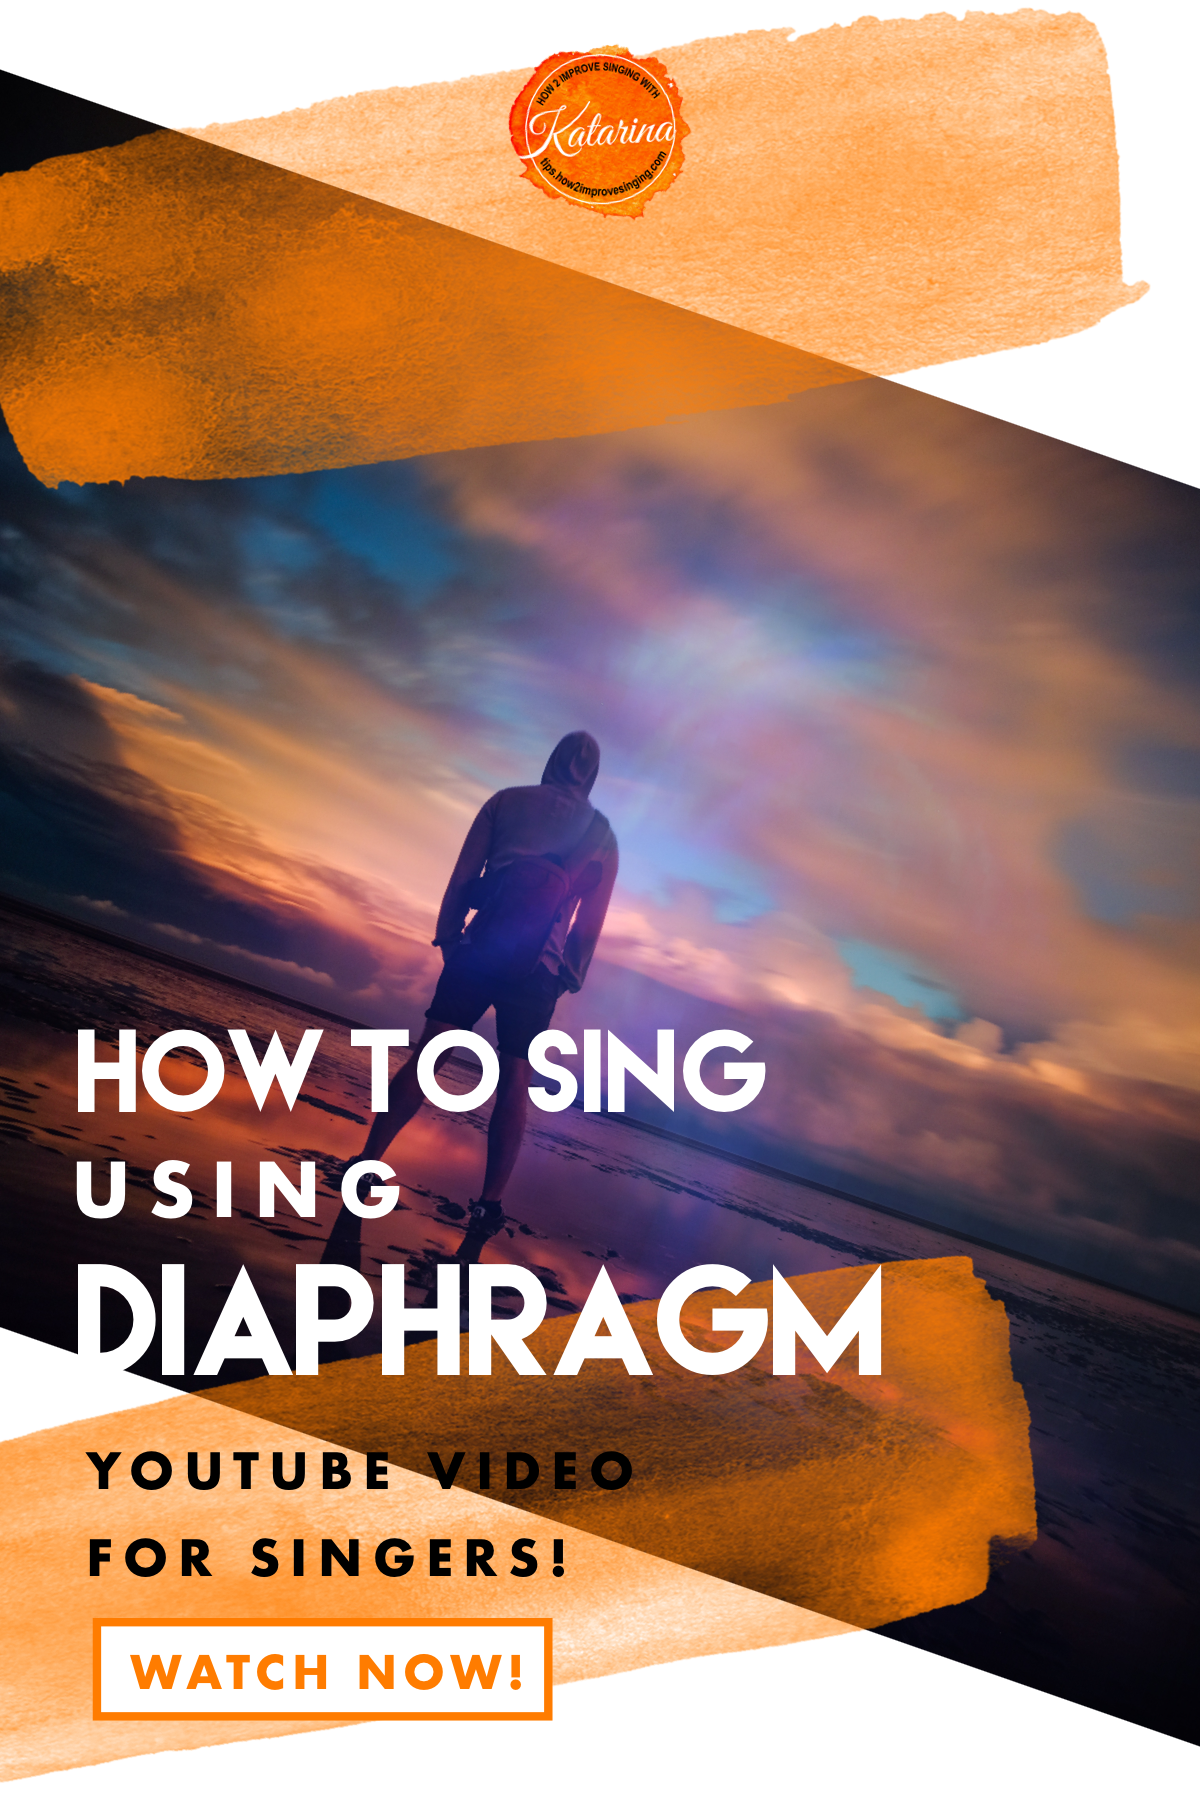 A video about the role of diaphragm in singing and how to